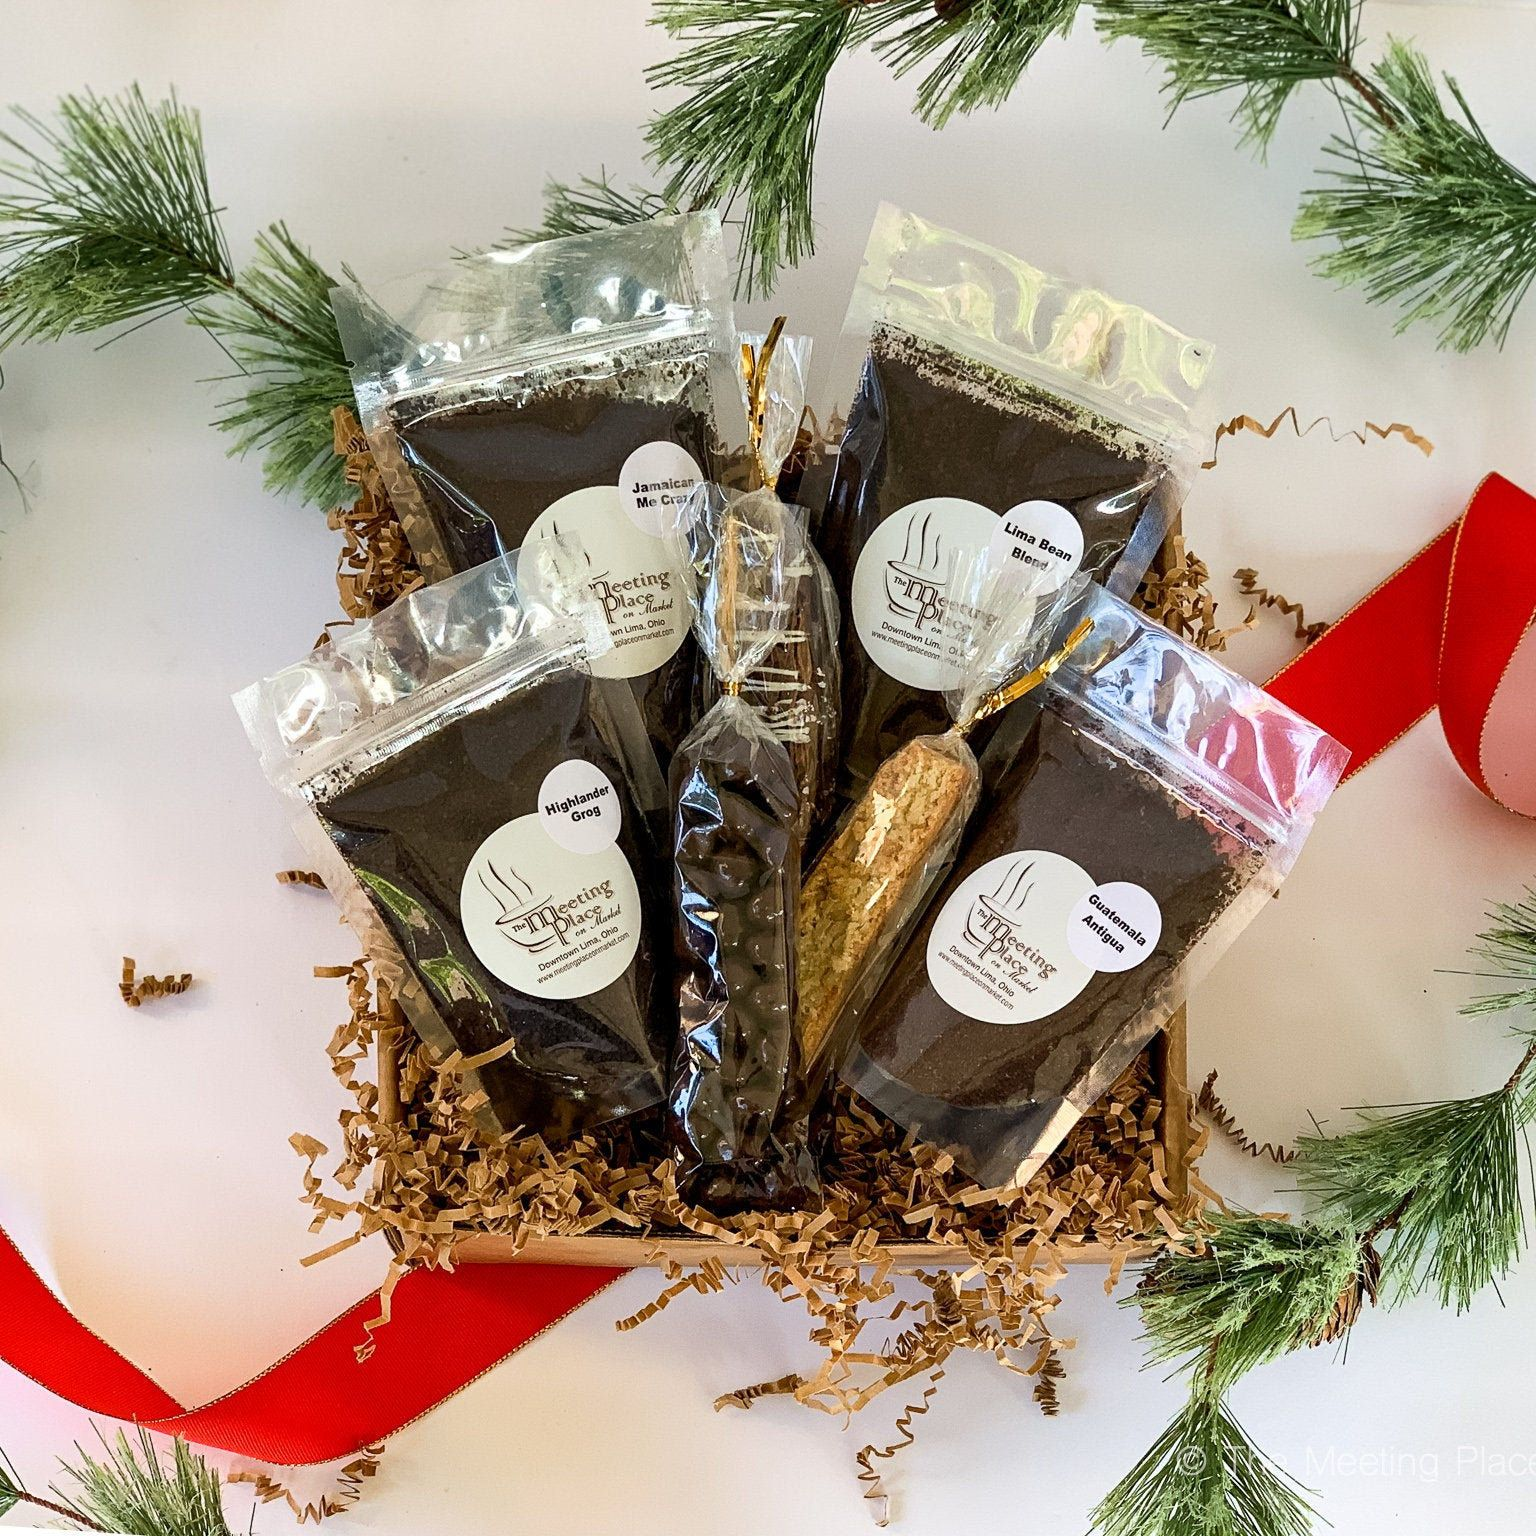 Holiday Gourmet Coffee Sampler Gift Flavored And Origin Etsy In 2020 Coffee Gifts Box Coffee Gifts Coffee Gift Sets